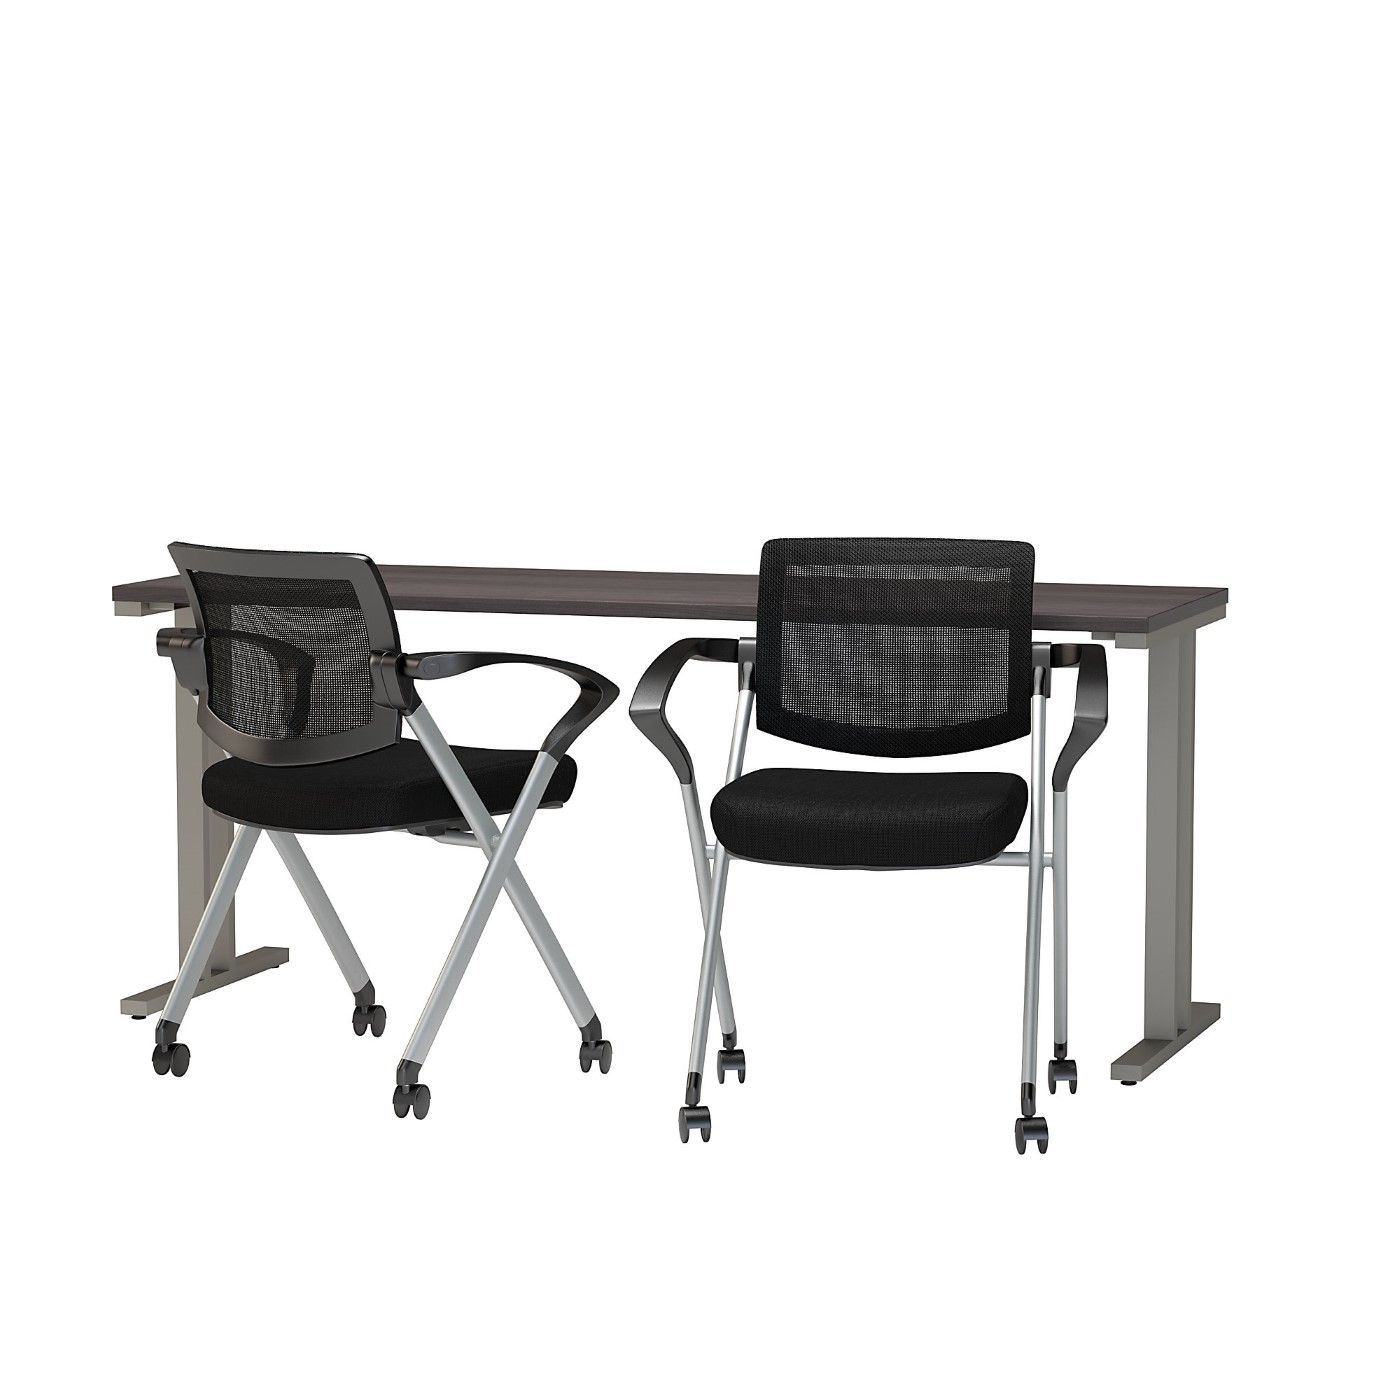 BUSH BUSINESS FURNITURE 400 SERIES 72W X 24D TRAINING TABLE WITH MESH BACK FOLDING CHAIRS. FREE SHIPPING